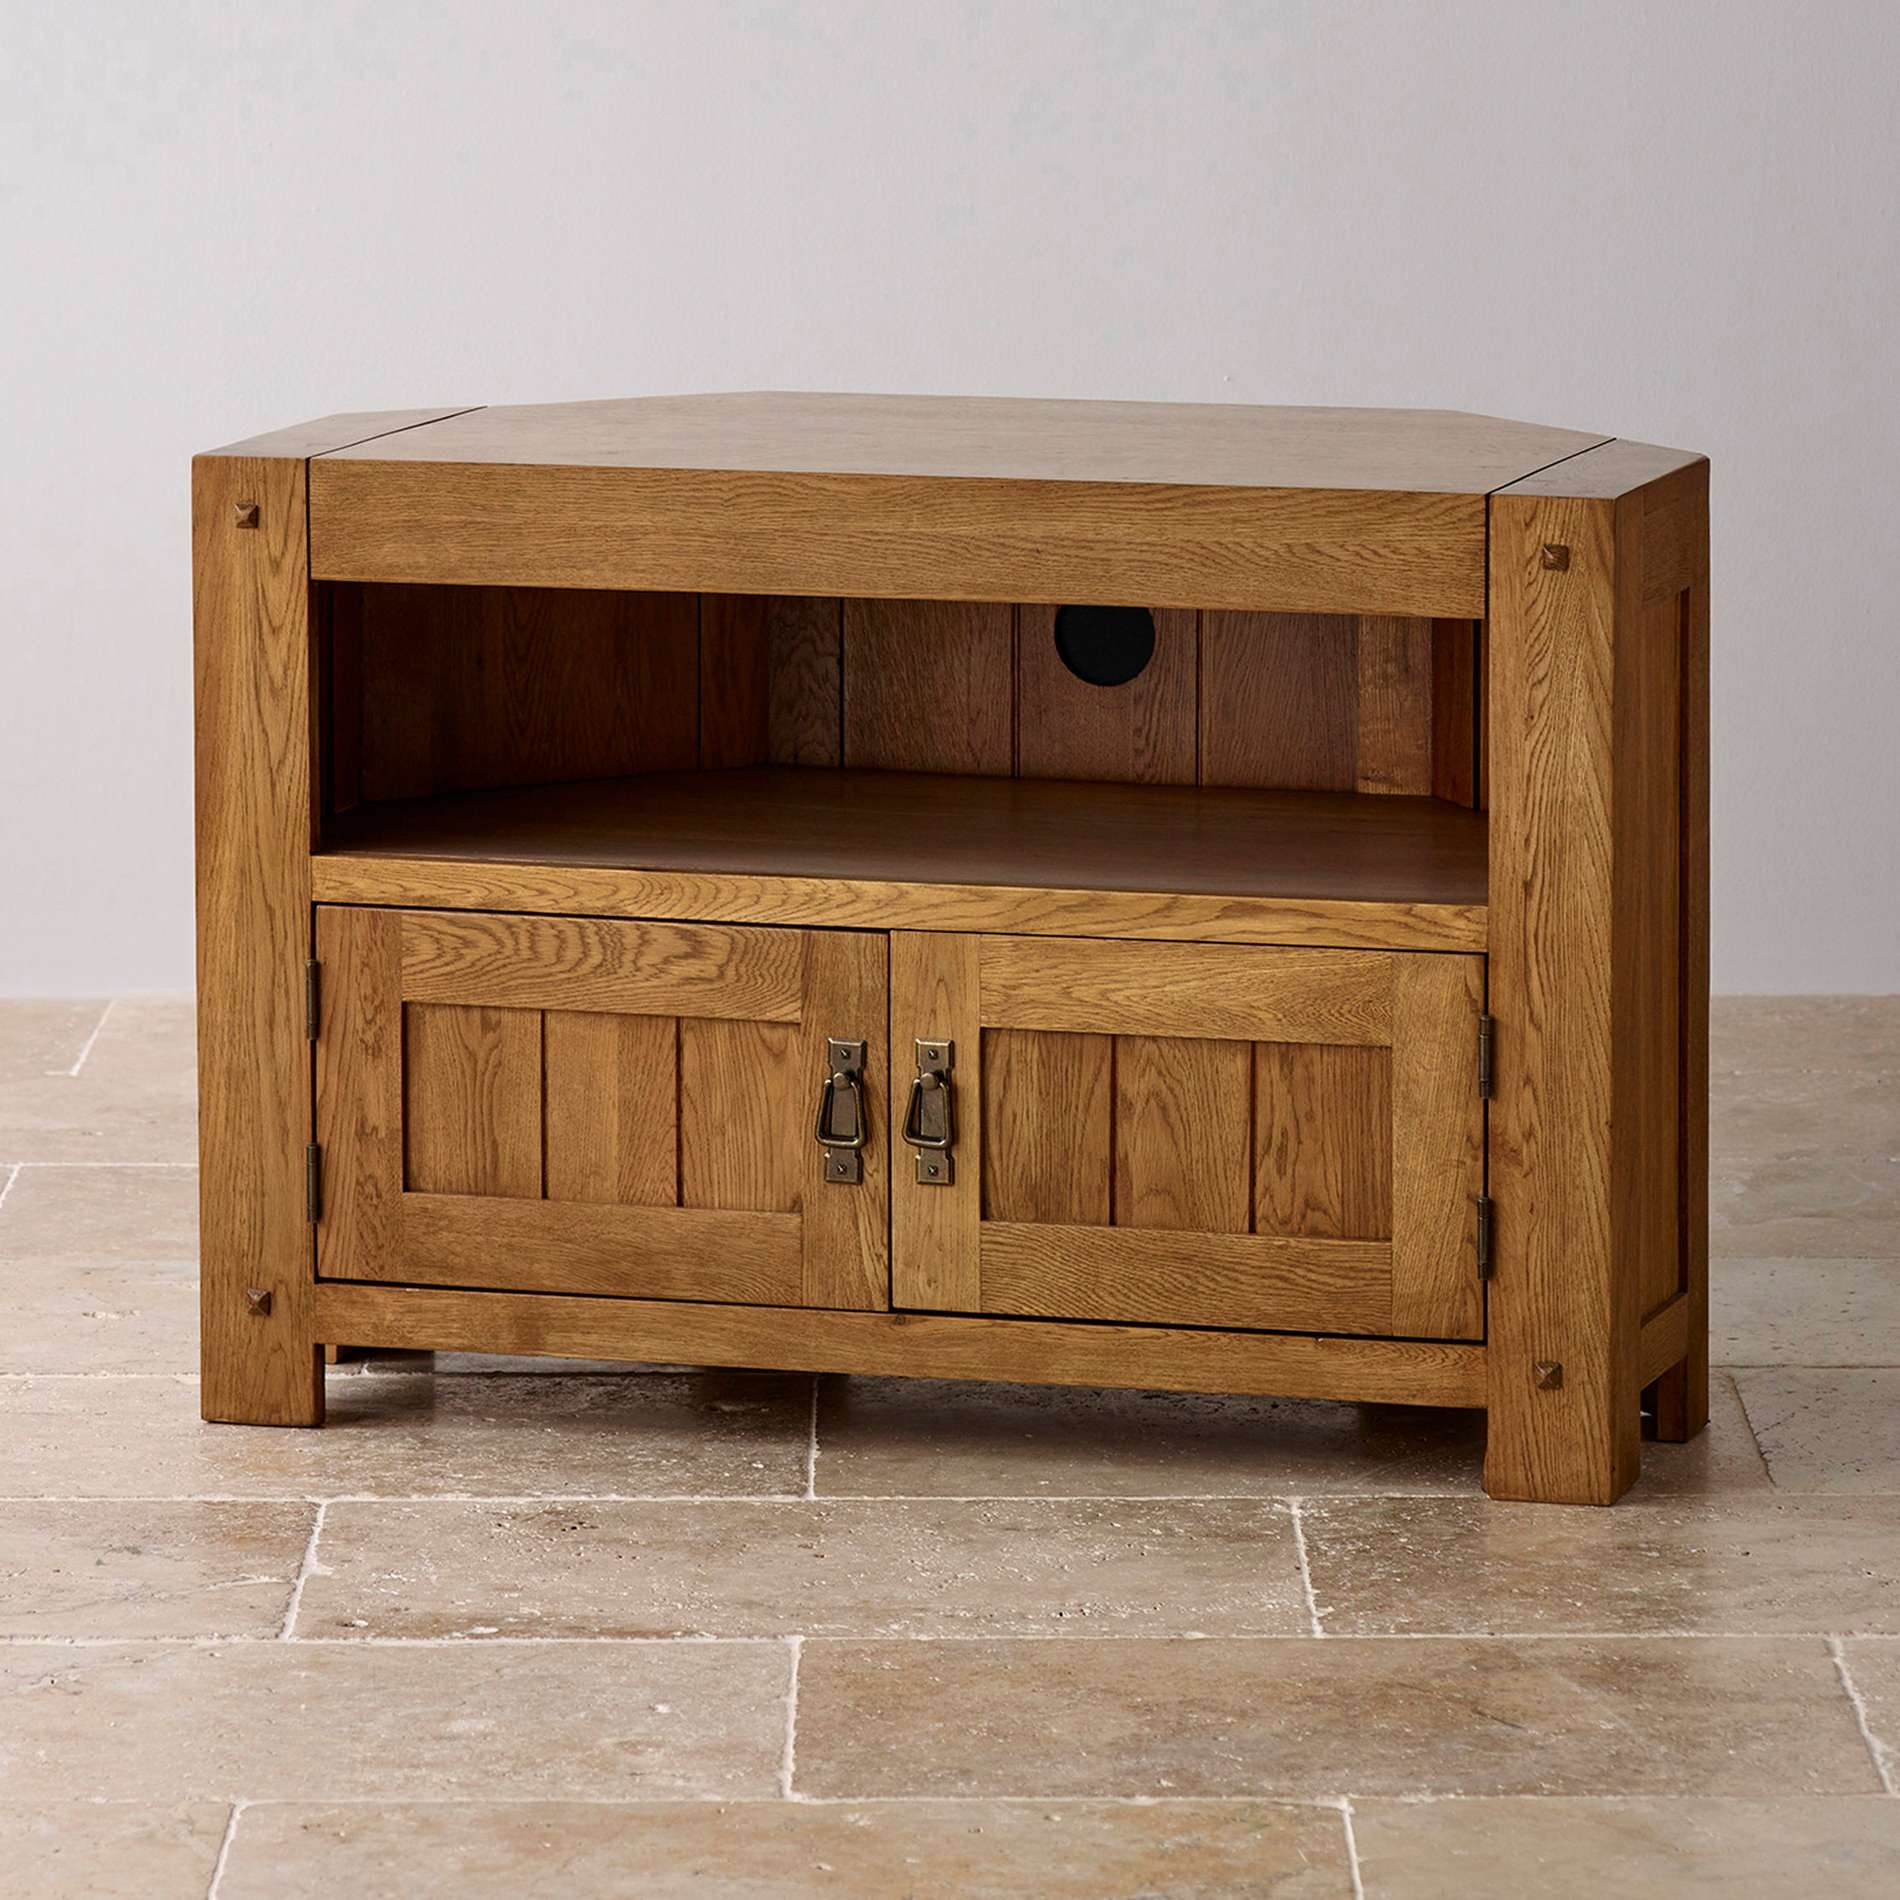 Inspirational Rustic Corner Tv Stand 44 About Remodel Small Home For Rustic Oak Tv Stands (View 12 of 15)